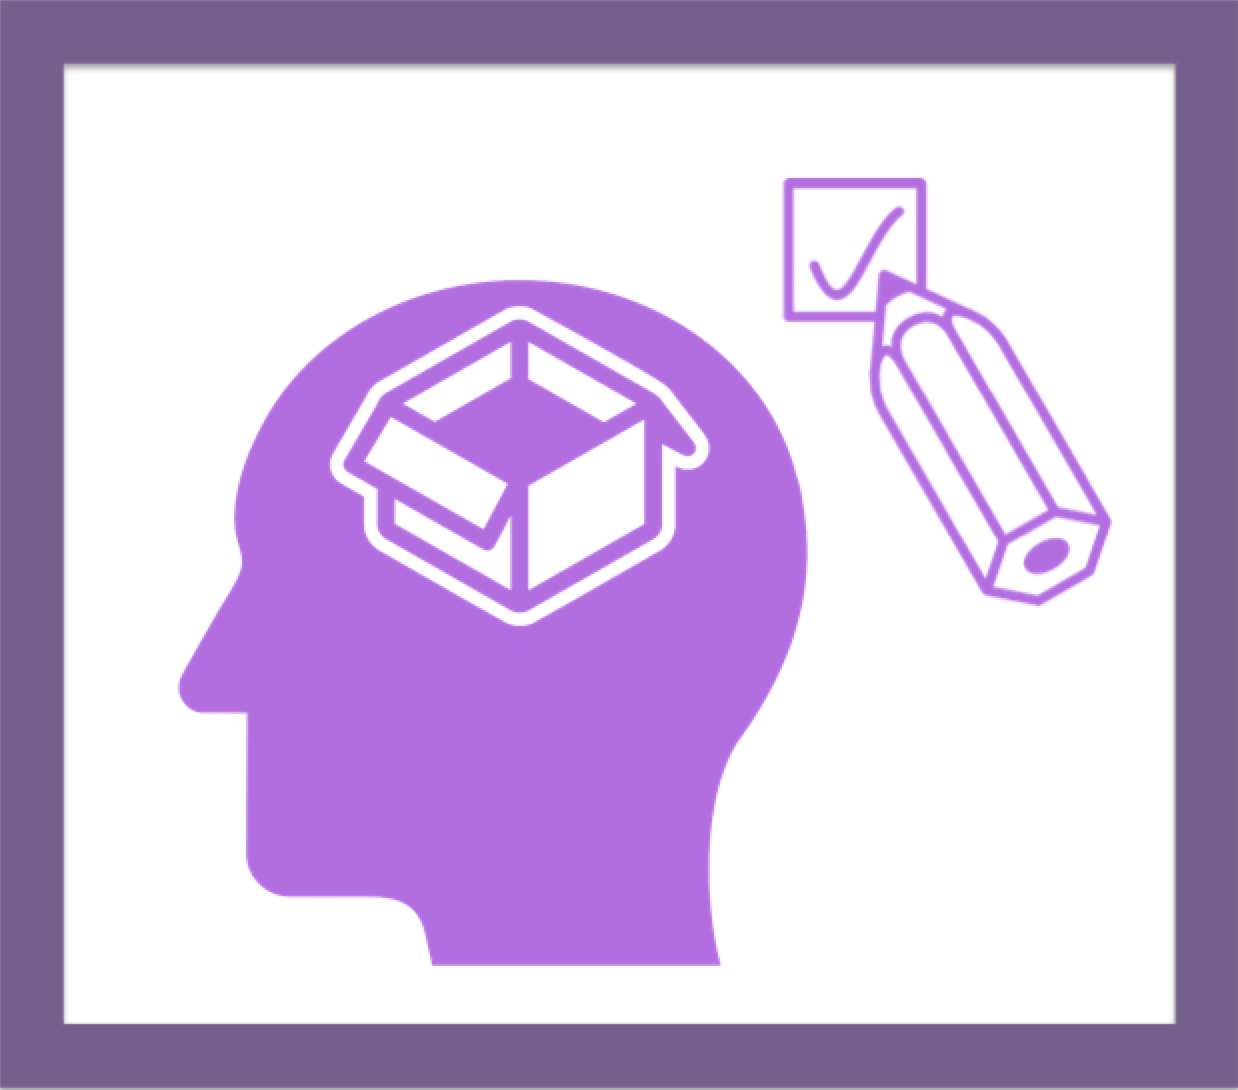 Line drawing of a head with an image of a box inserted, and another image of a pencil checking off a box.